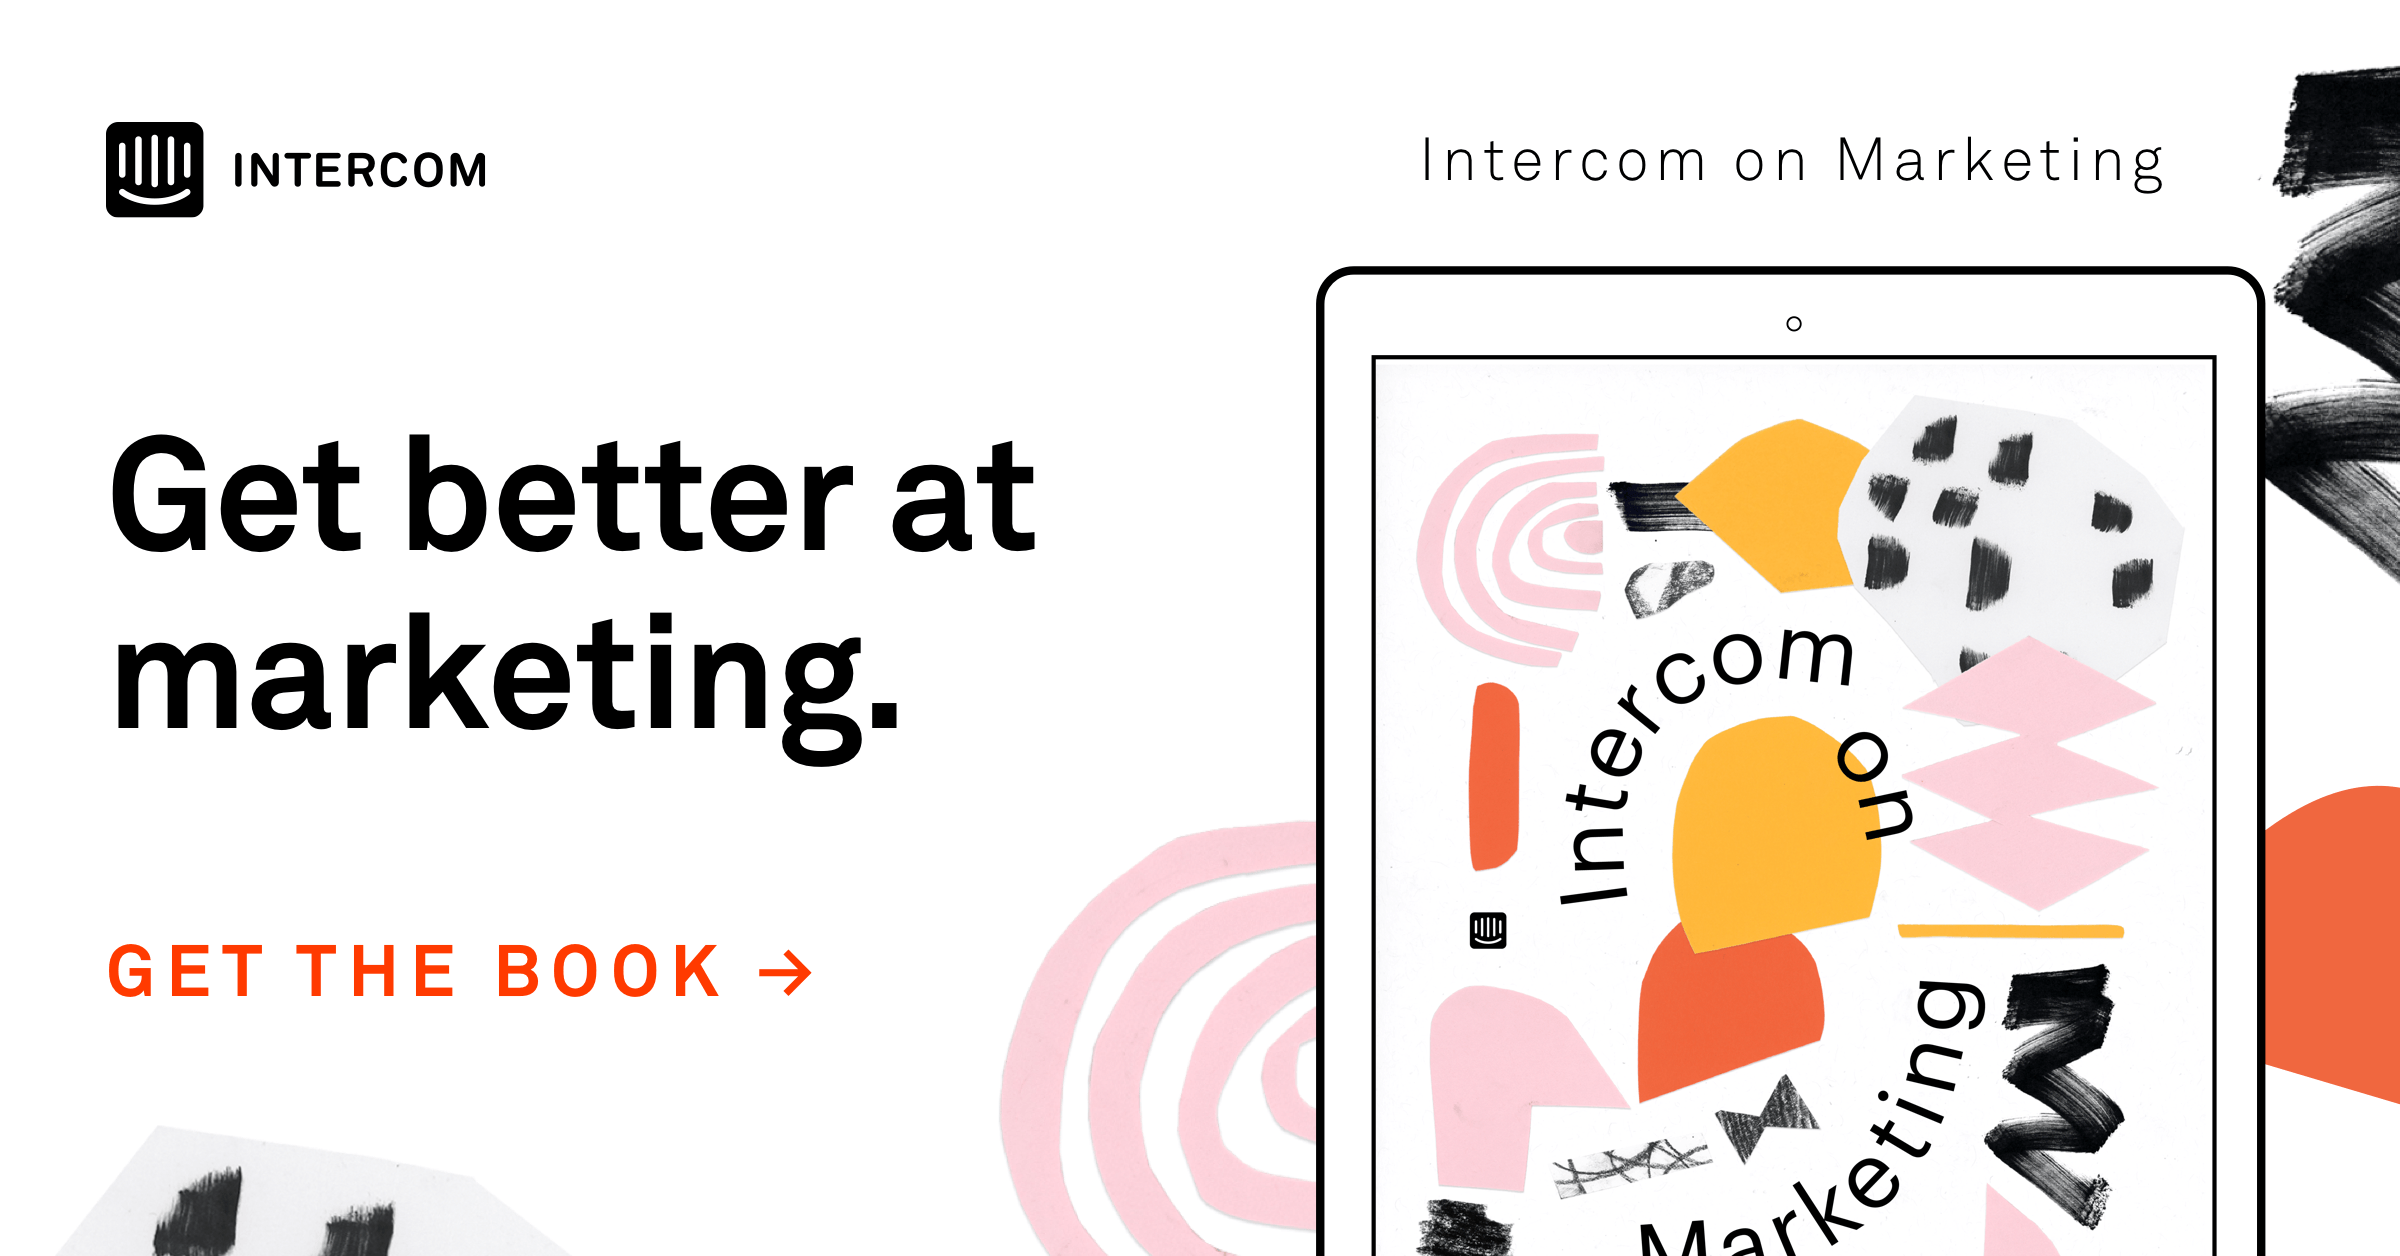 Download our book Intercom on Marketing